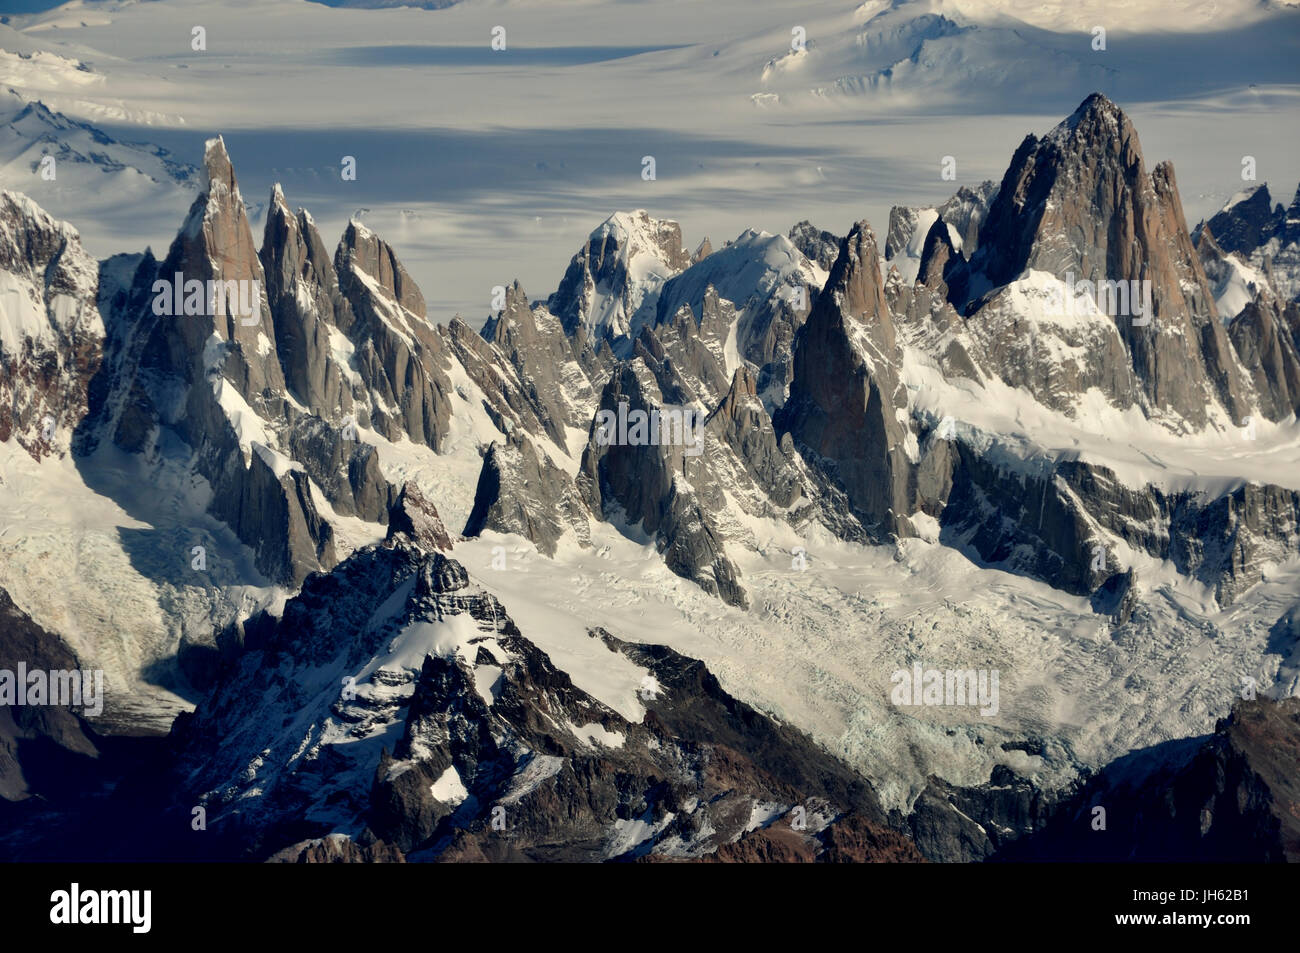 Aerial view of cerro fitz roy and cerro torre and the southern patagonian ice field in Patagonia, Argentina - Stock Image